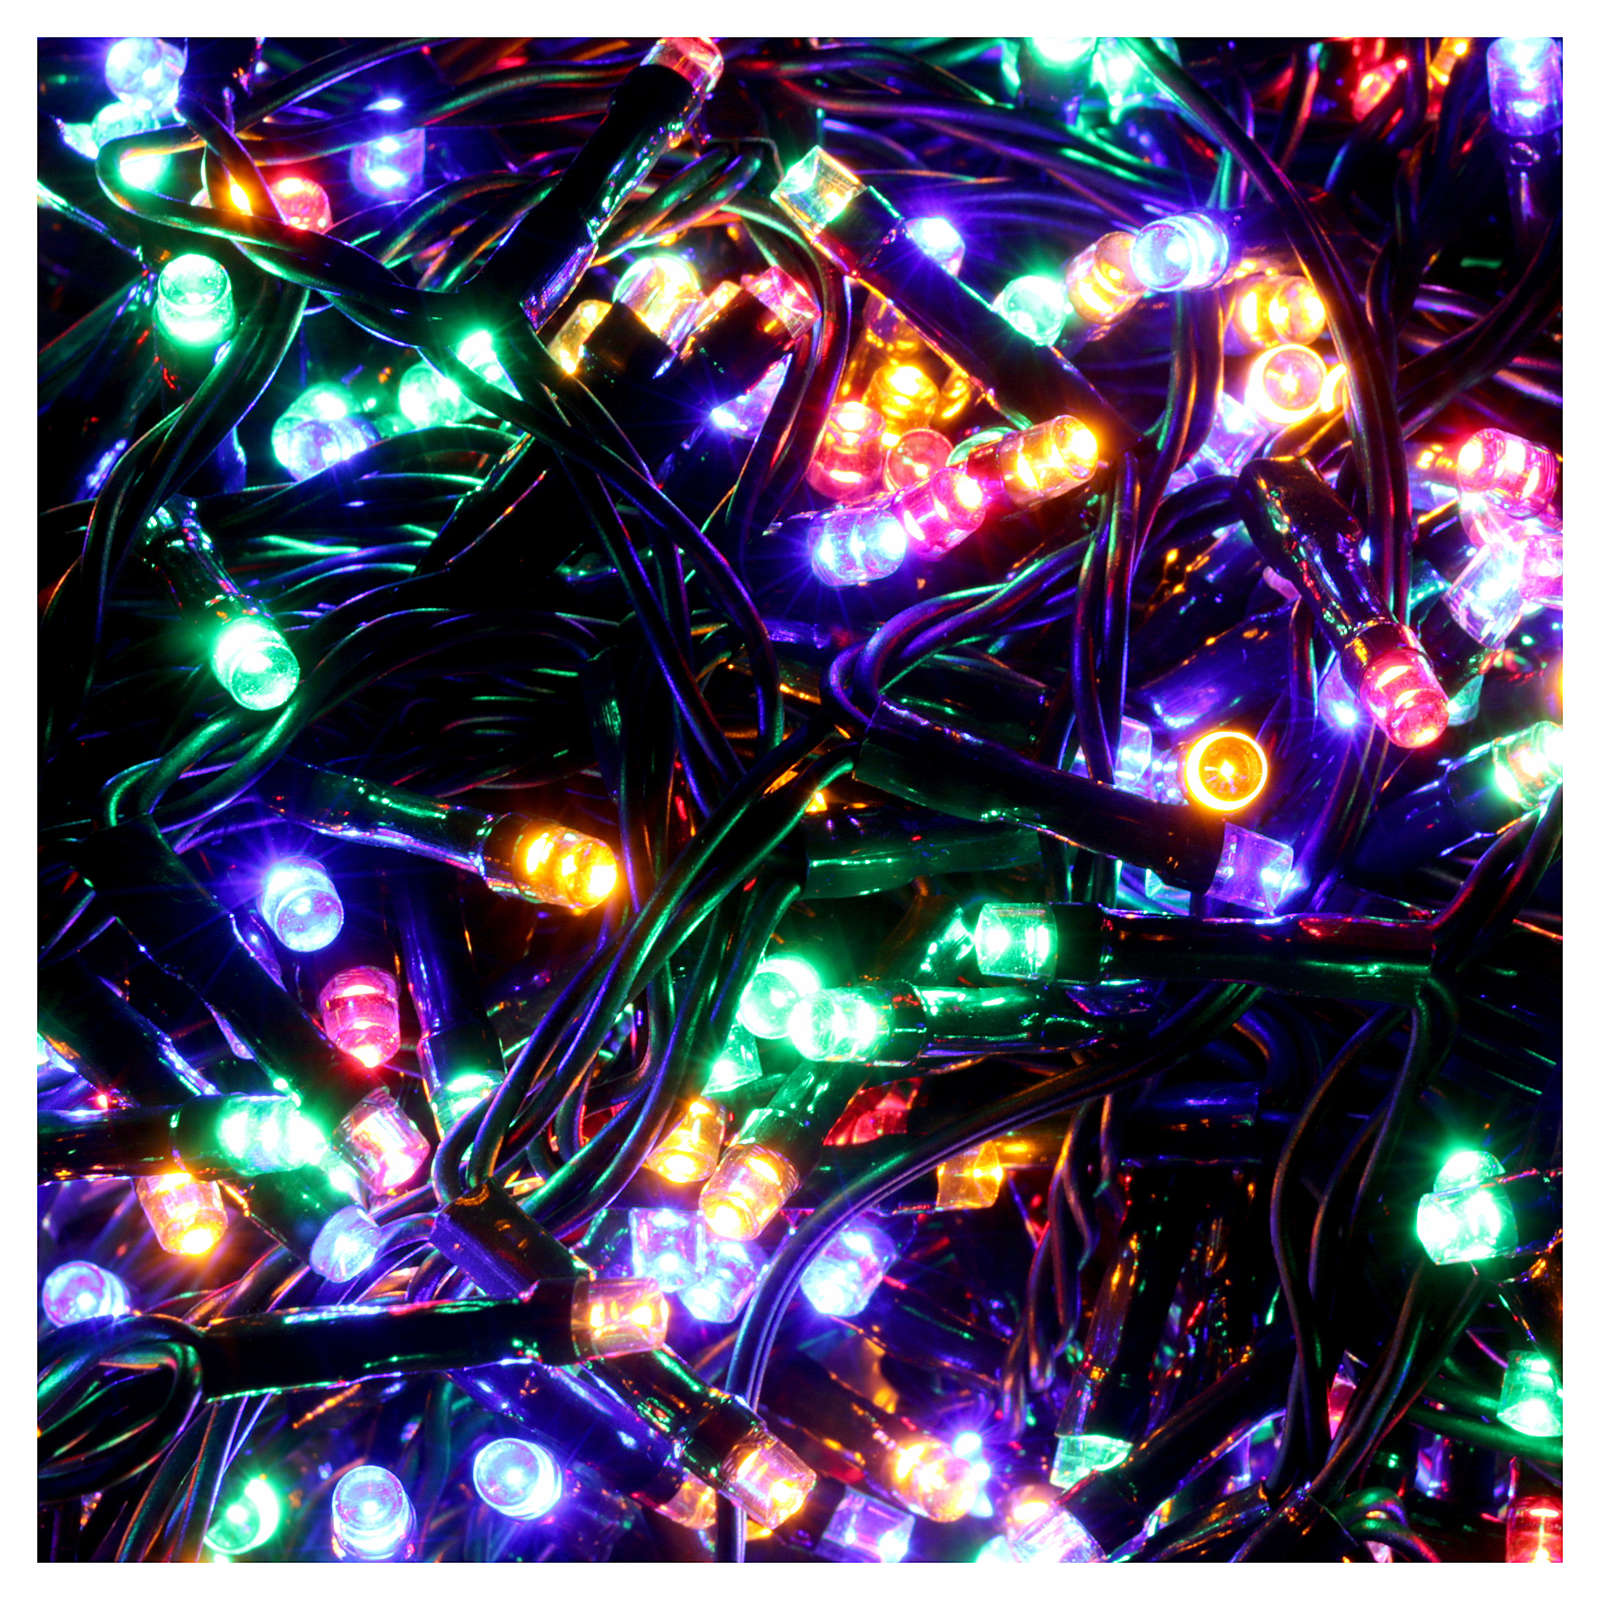 Luci di Natale 750 LED multicolor programmabile ESTERNO INTERNO corrente 3